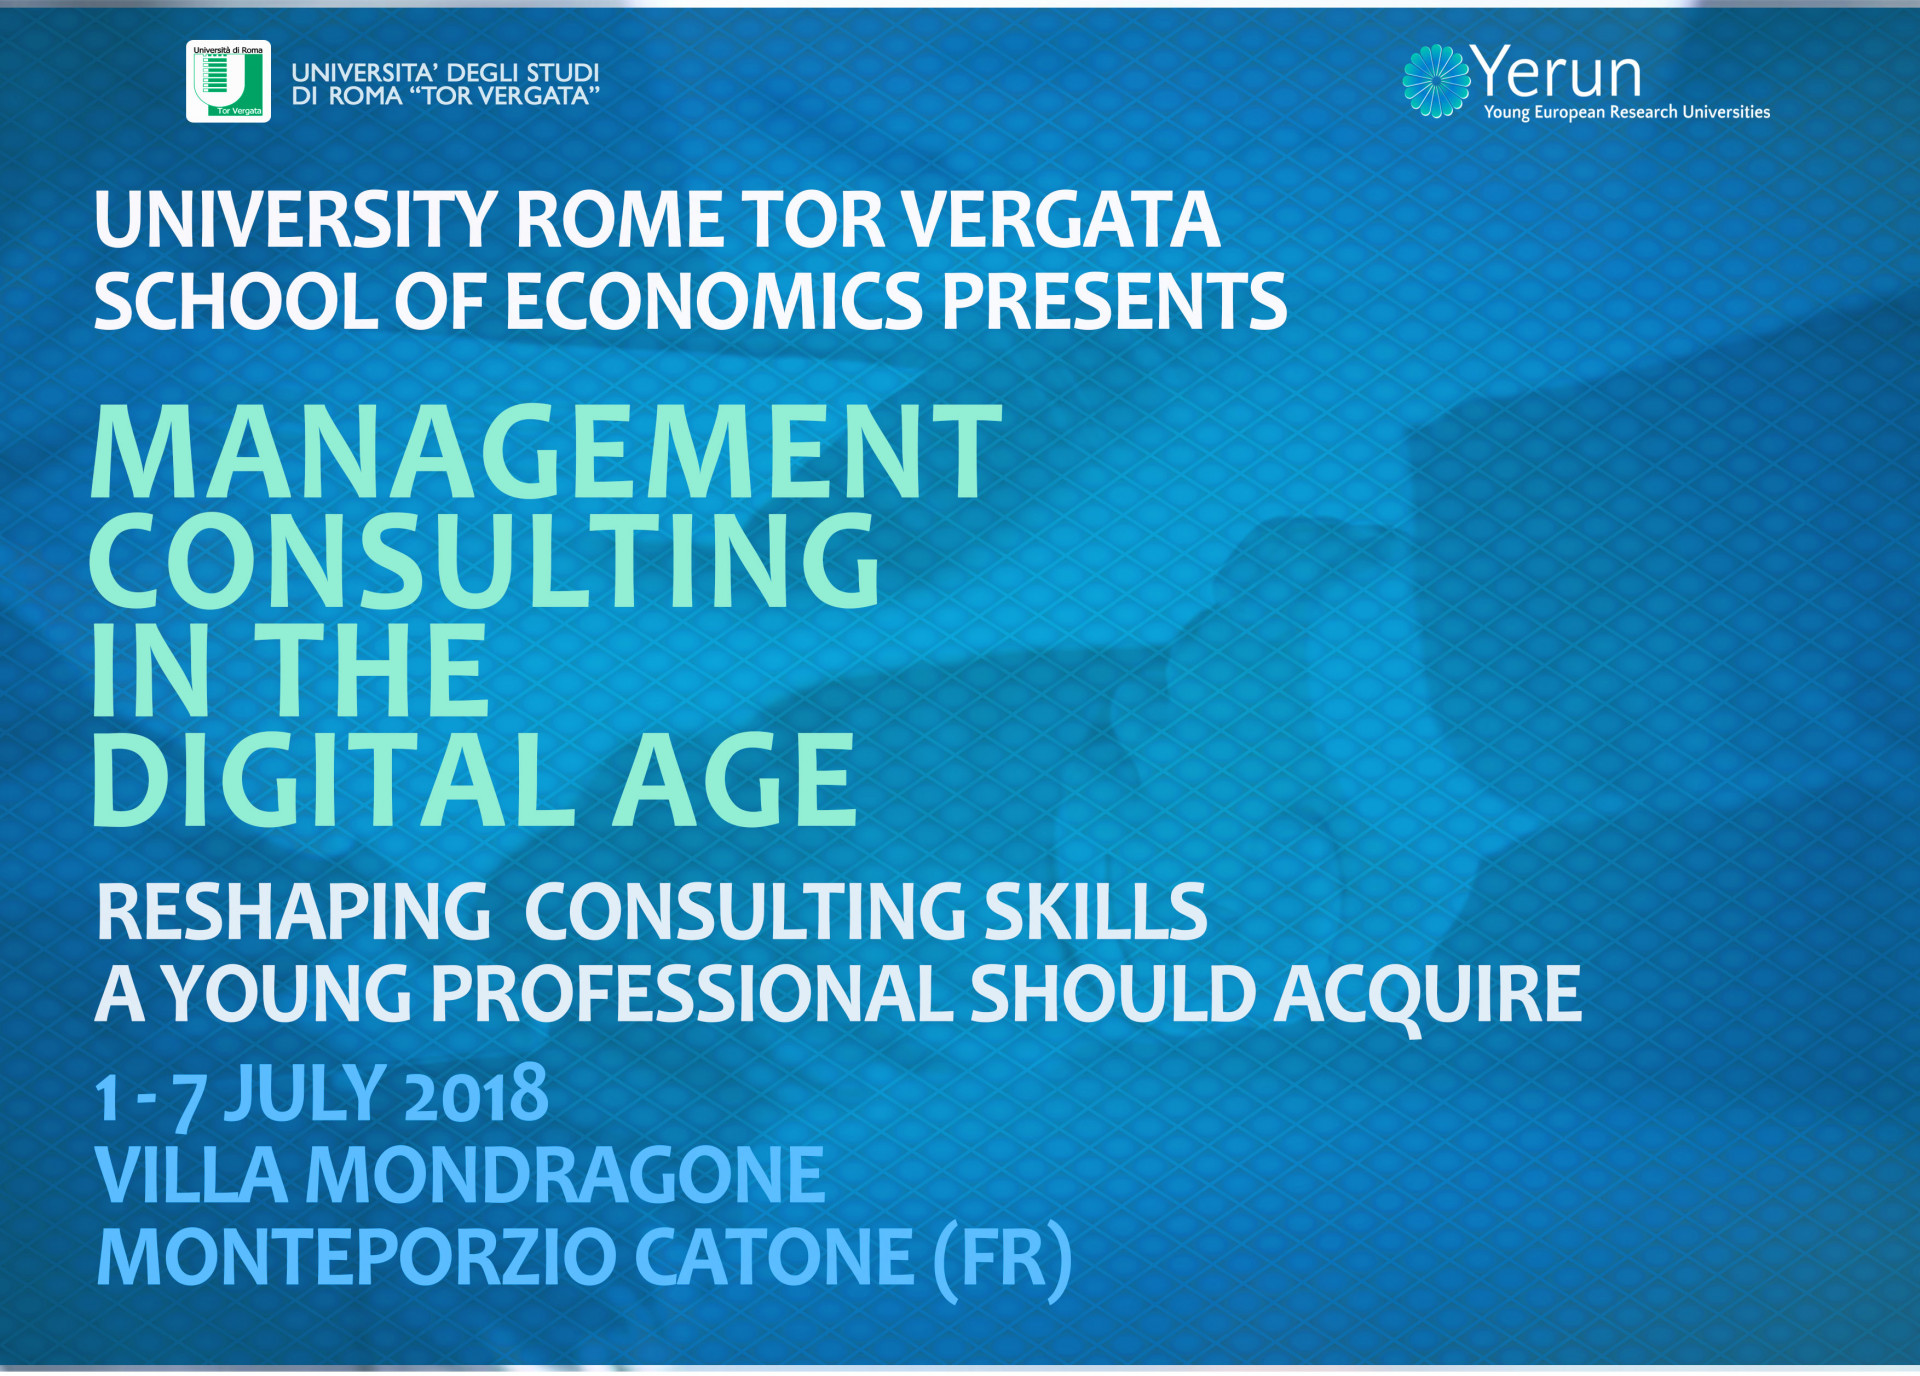 management consulting in digital age